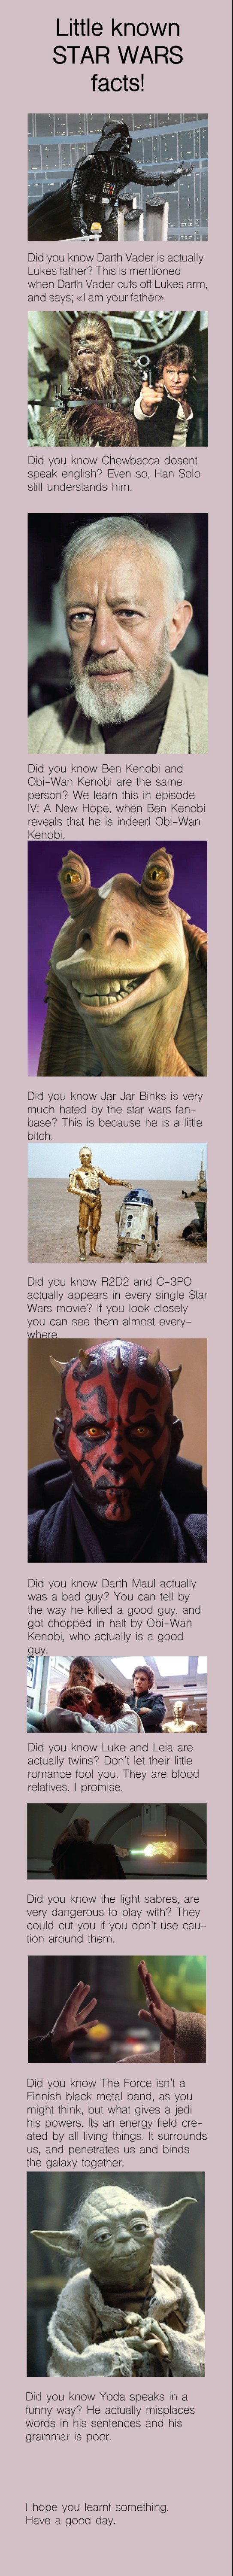 Little known STAR WARS facts!. . Little known STAR WARS facts! Did you know Darth Vader is actually Lukes father? This is mentioned when Darth Vader cuts off Lu